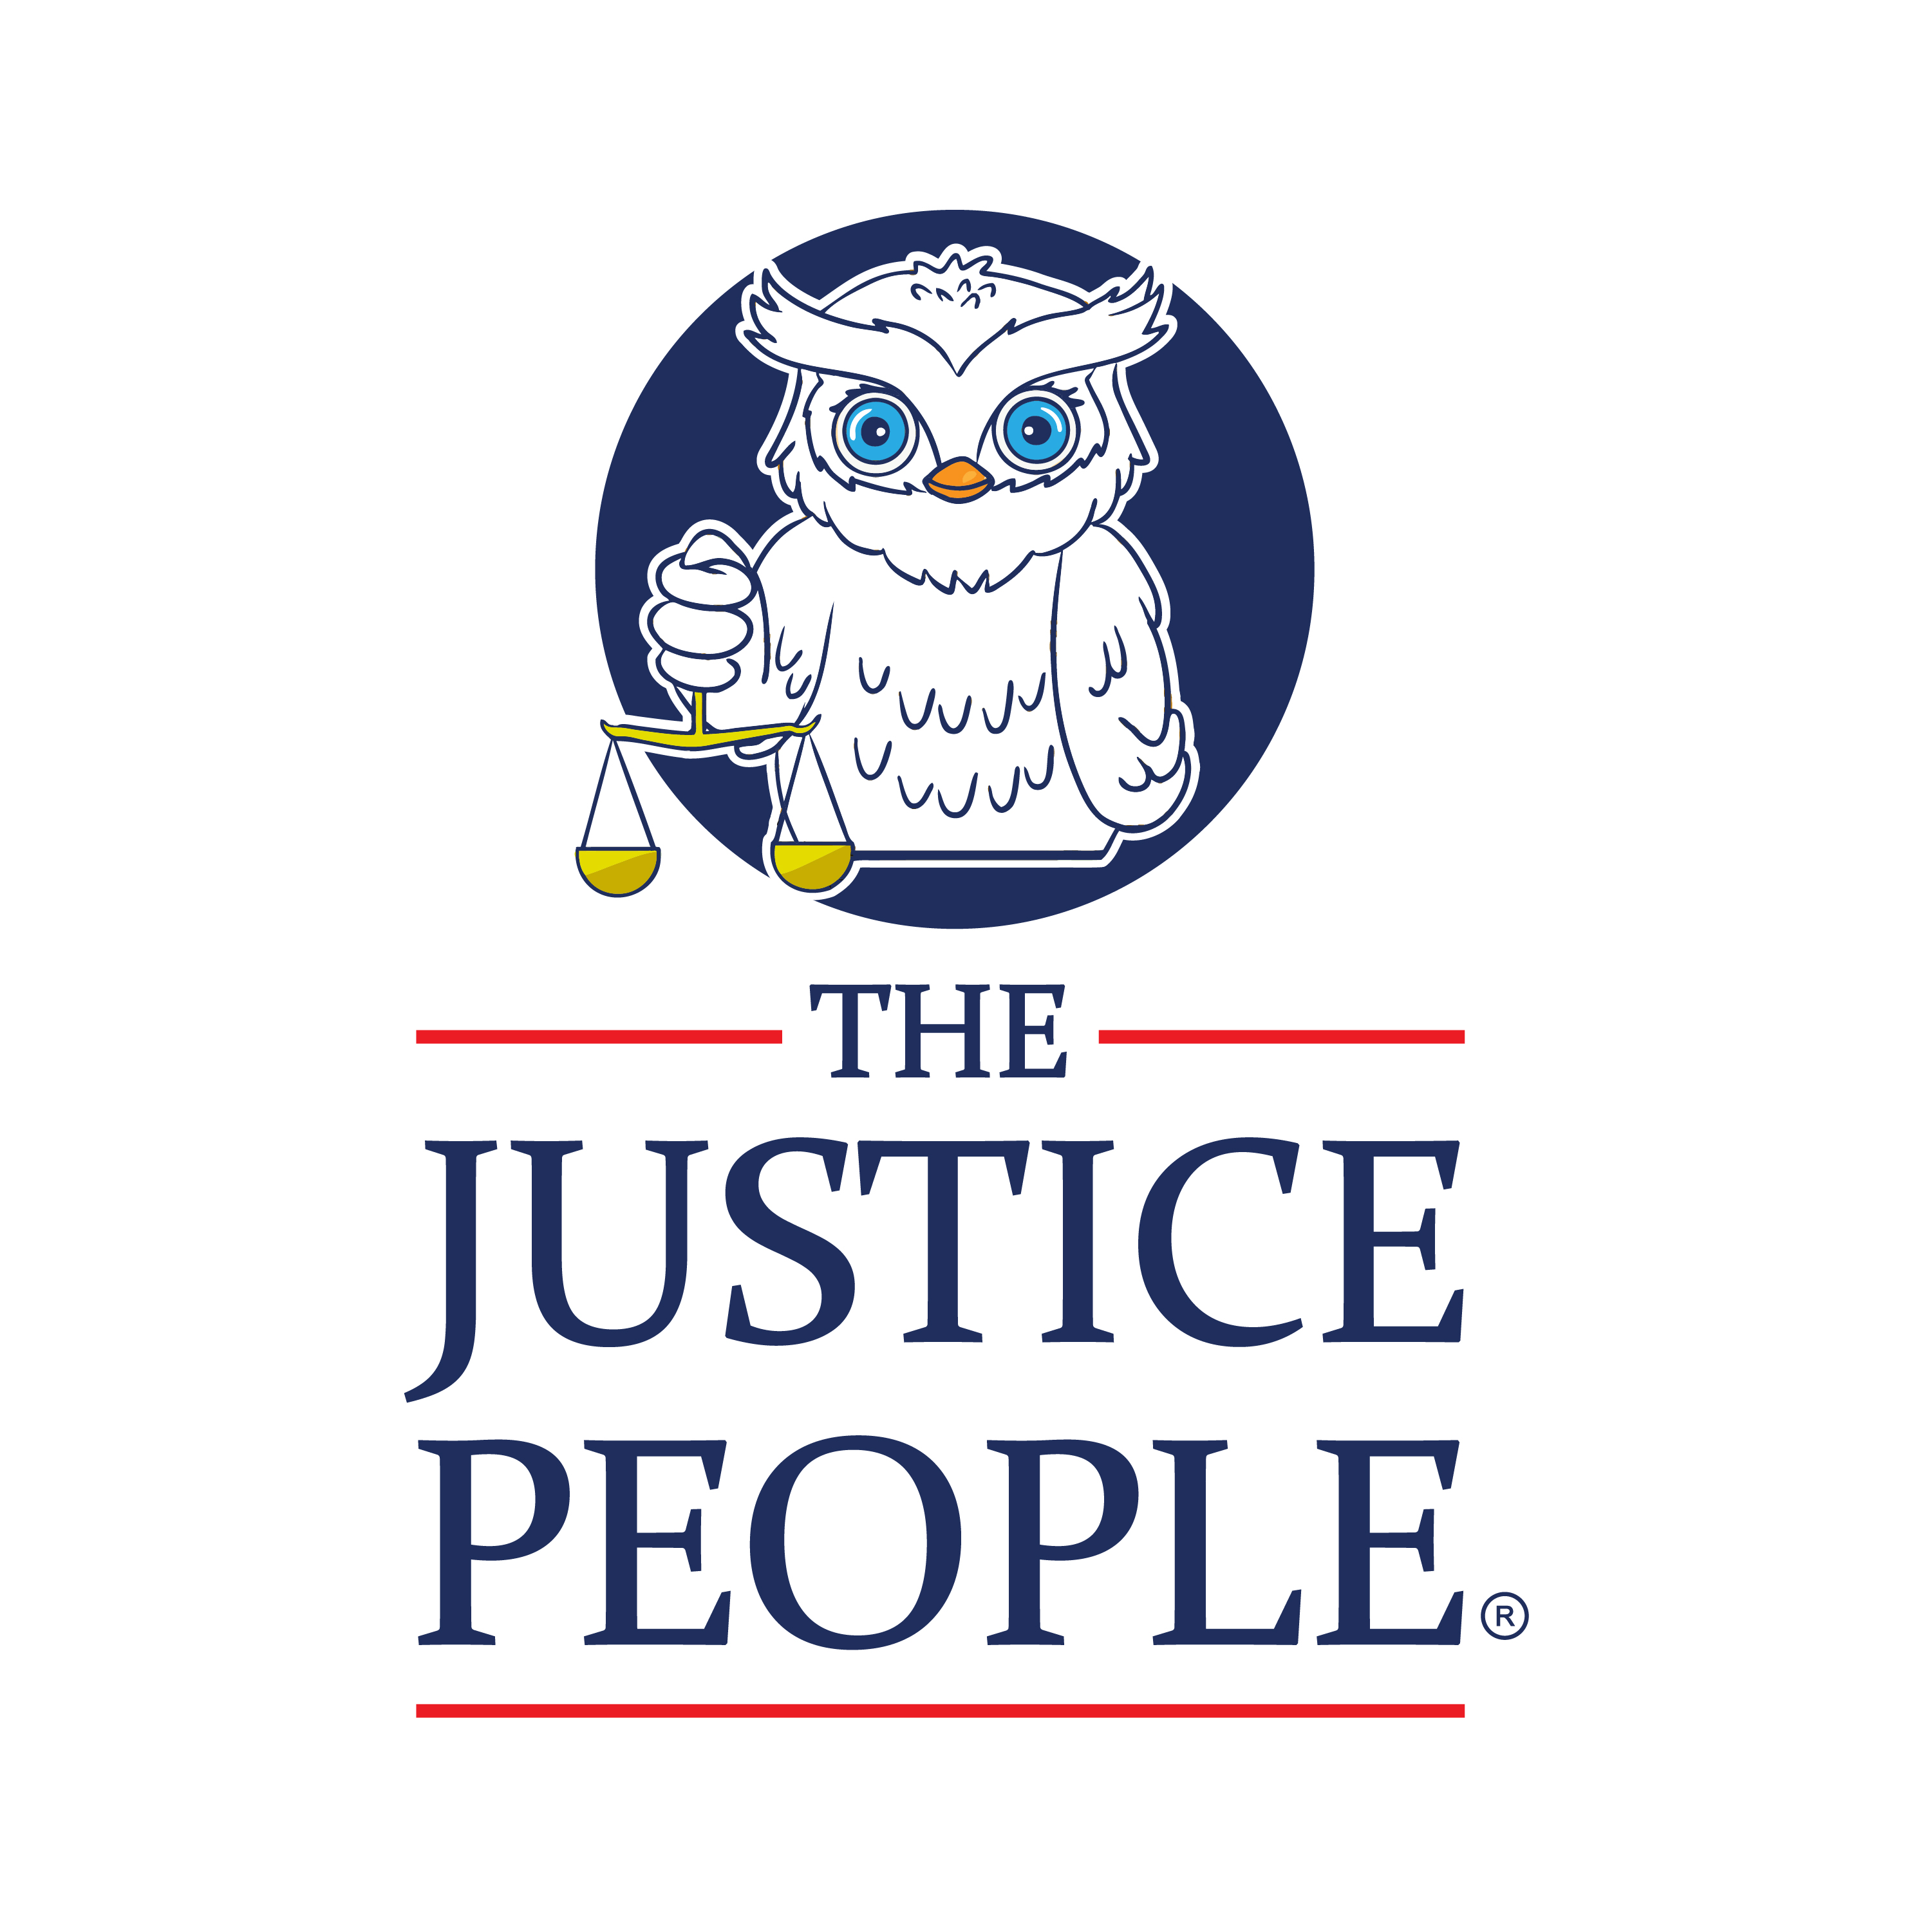 The Justice People Document Services